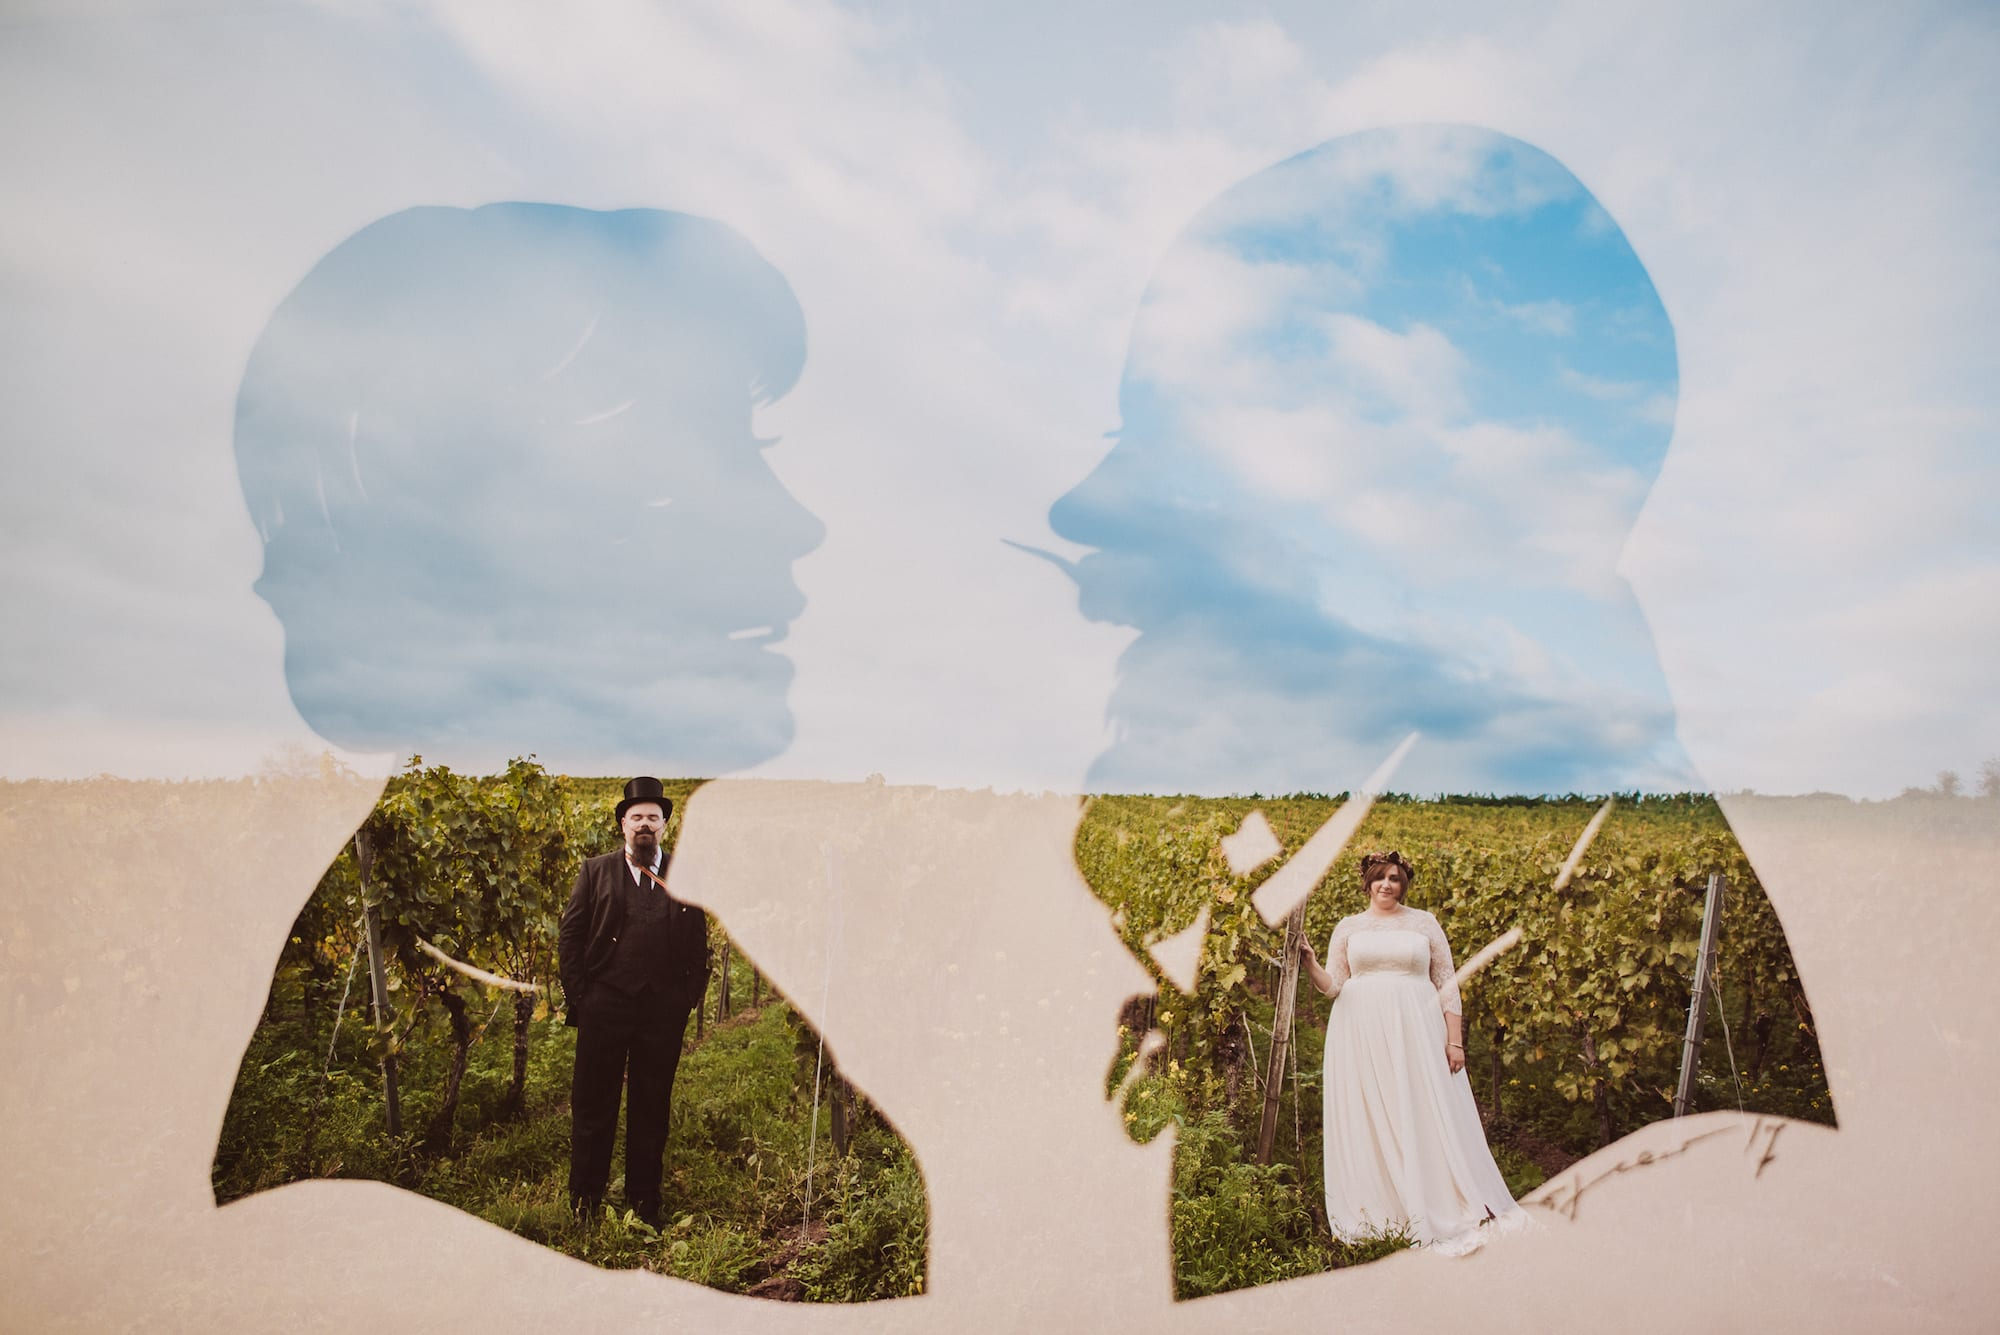 05 double Exposure Wedding photography profile - Doppelbelichtungen in der Hochzeitsfotografie